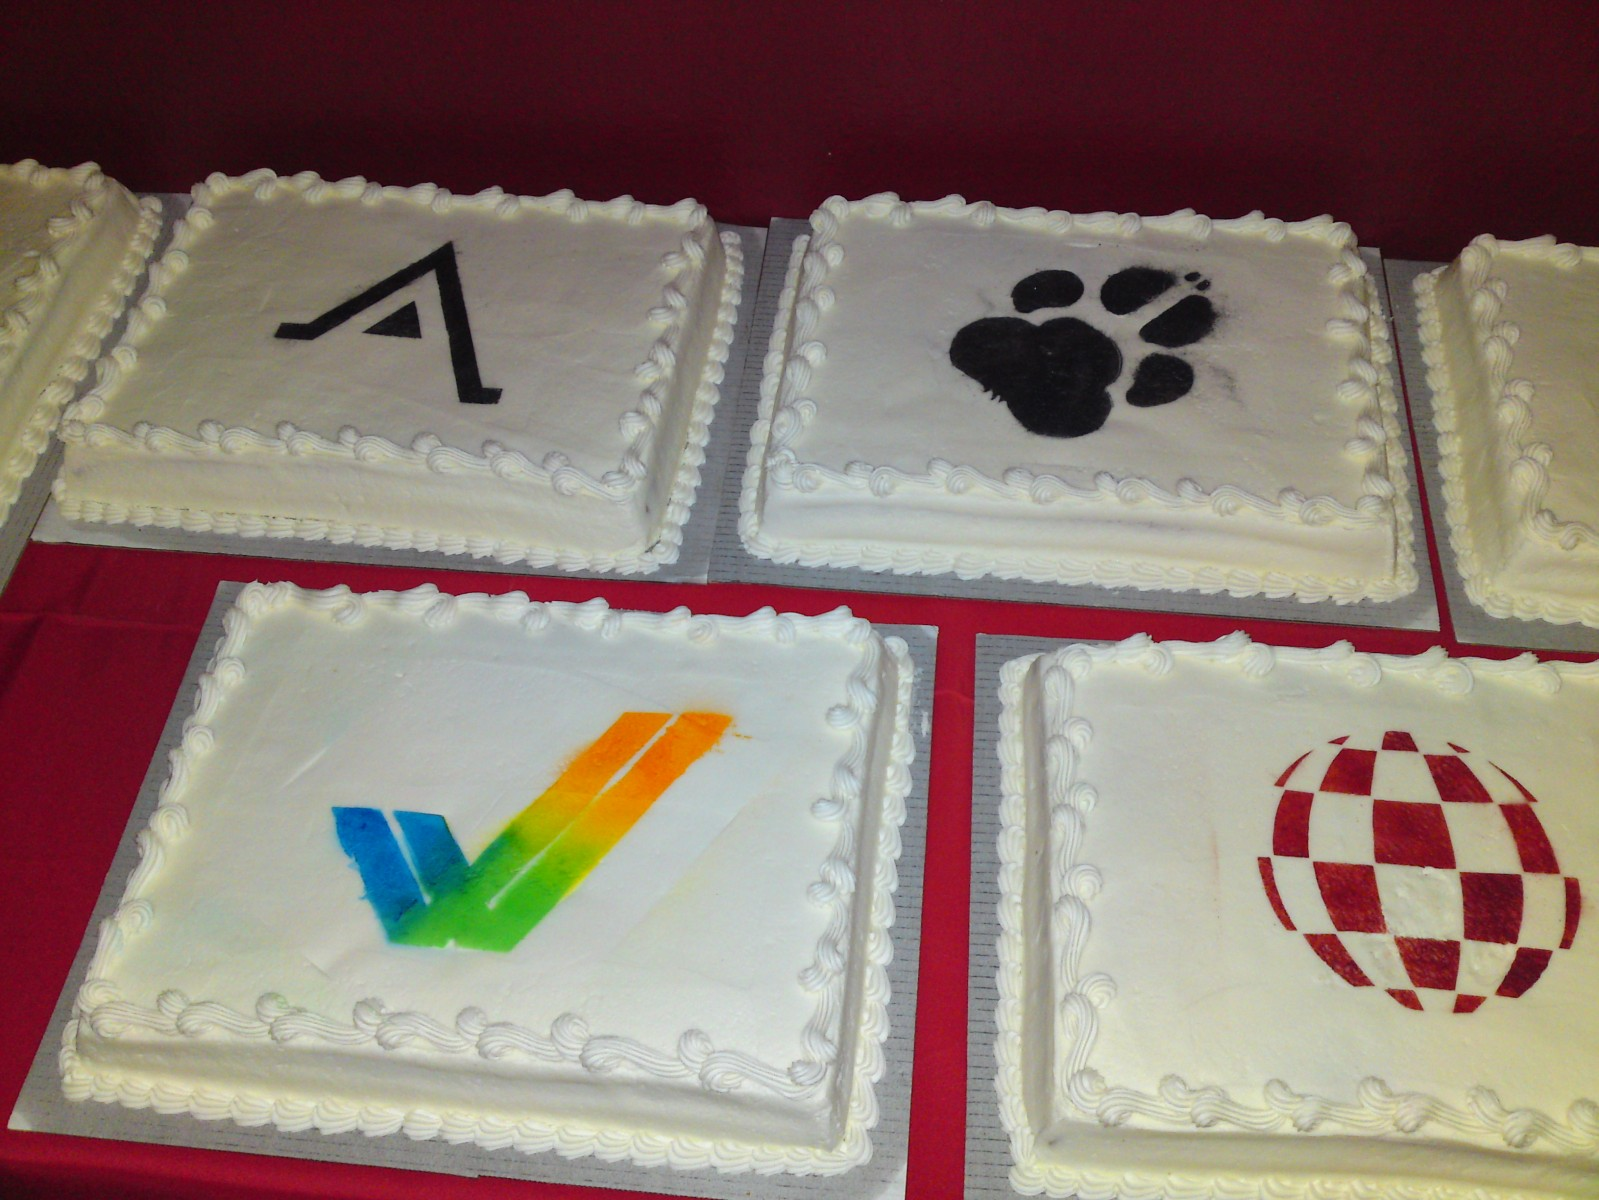 Specialty banquet cakes